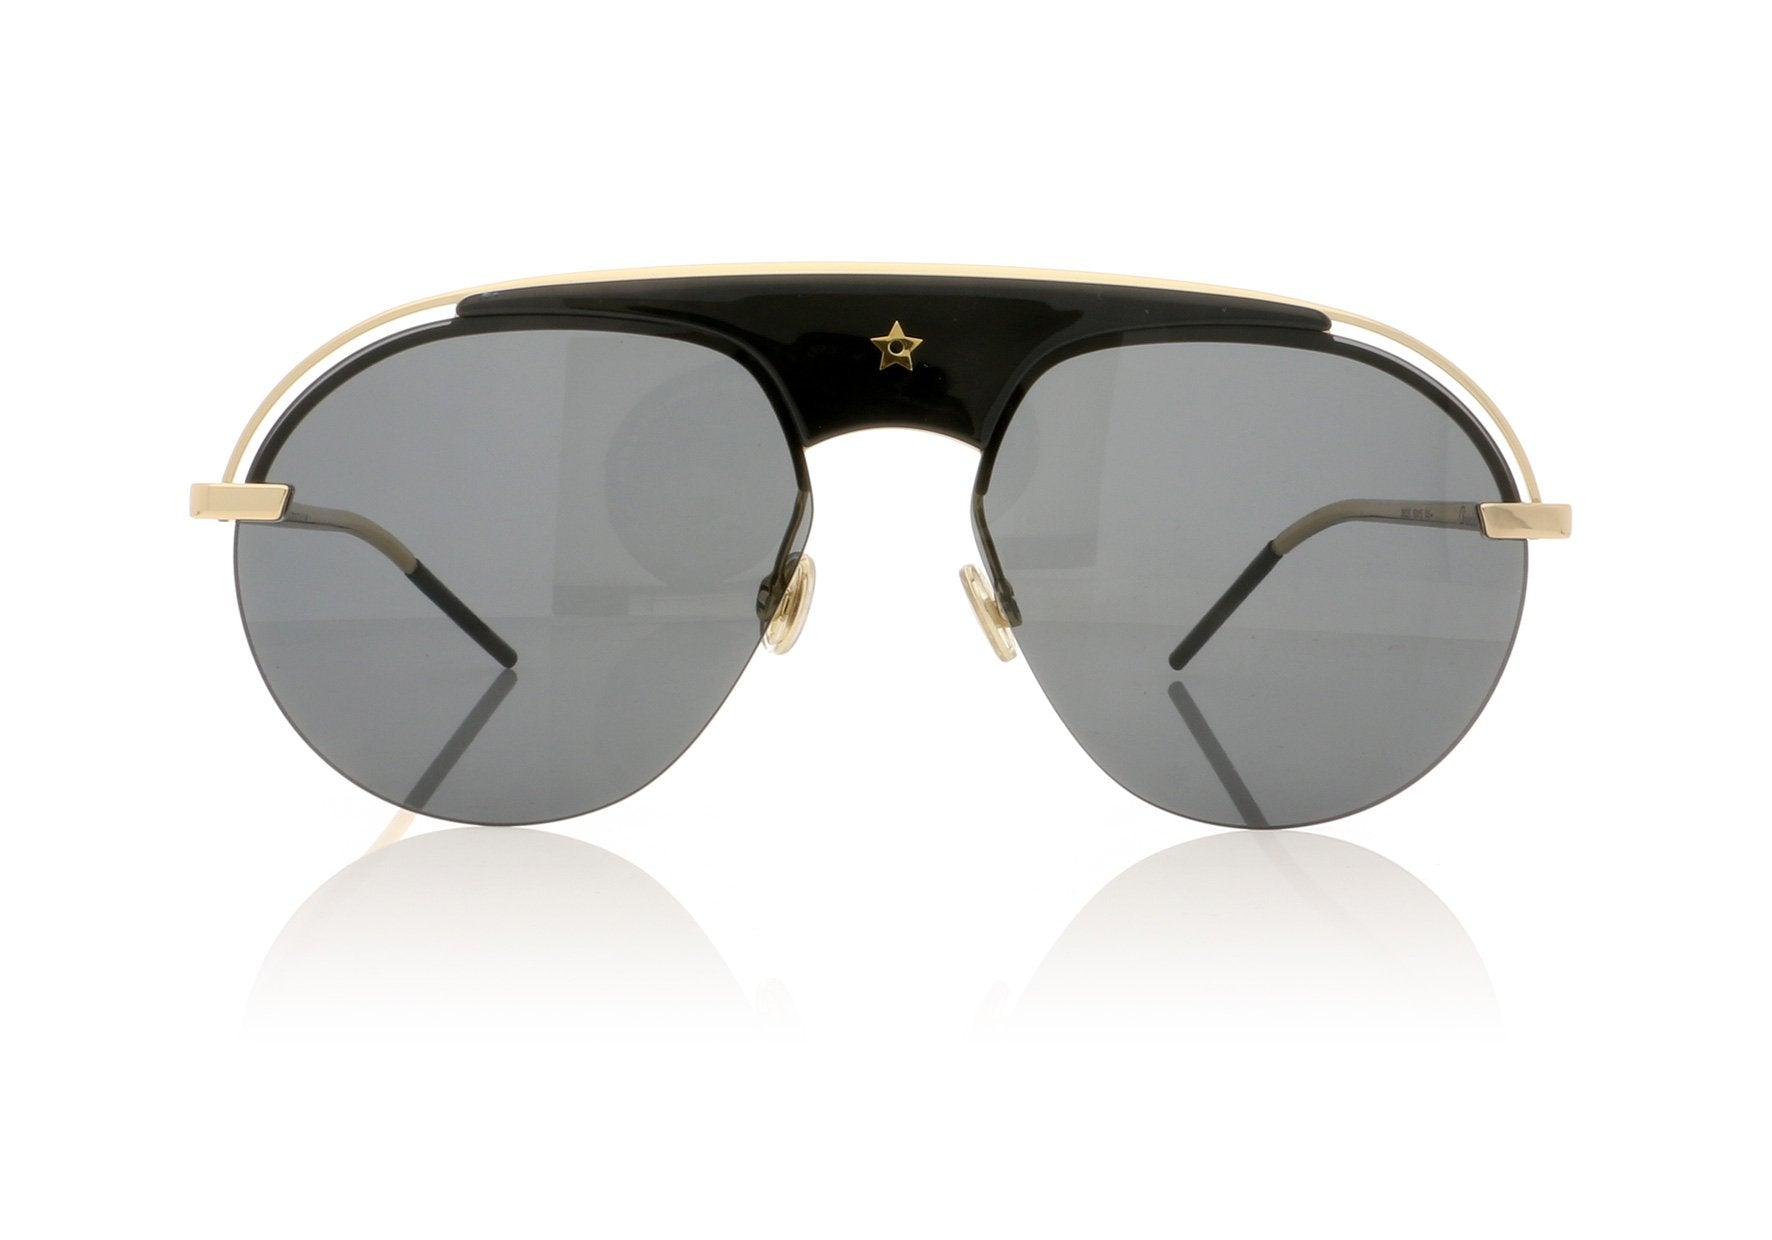 79e09ec3843 Dior DIO(R)EVOLUTION 2M22K Black Gold Sunglasses